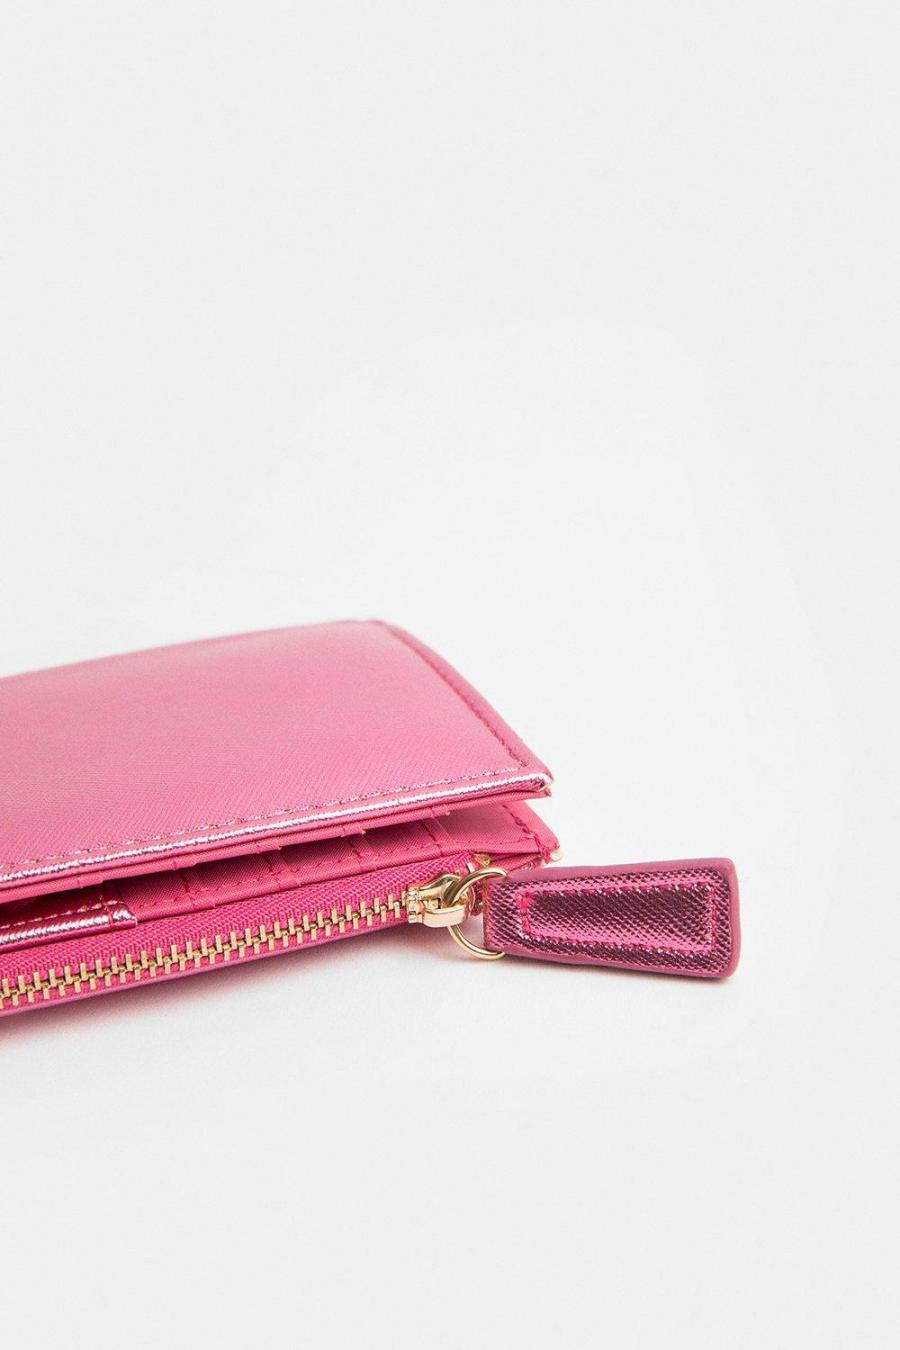 Coast Purses | Womens Metallic Purse Pink